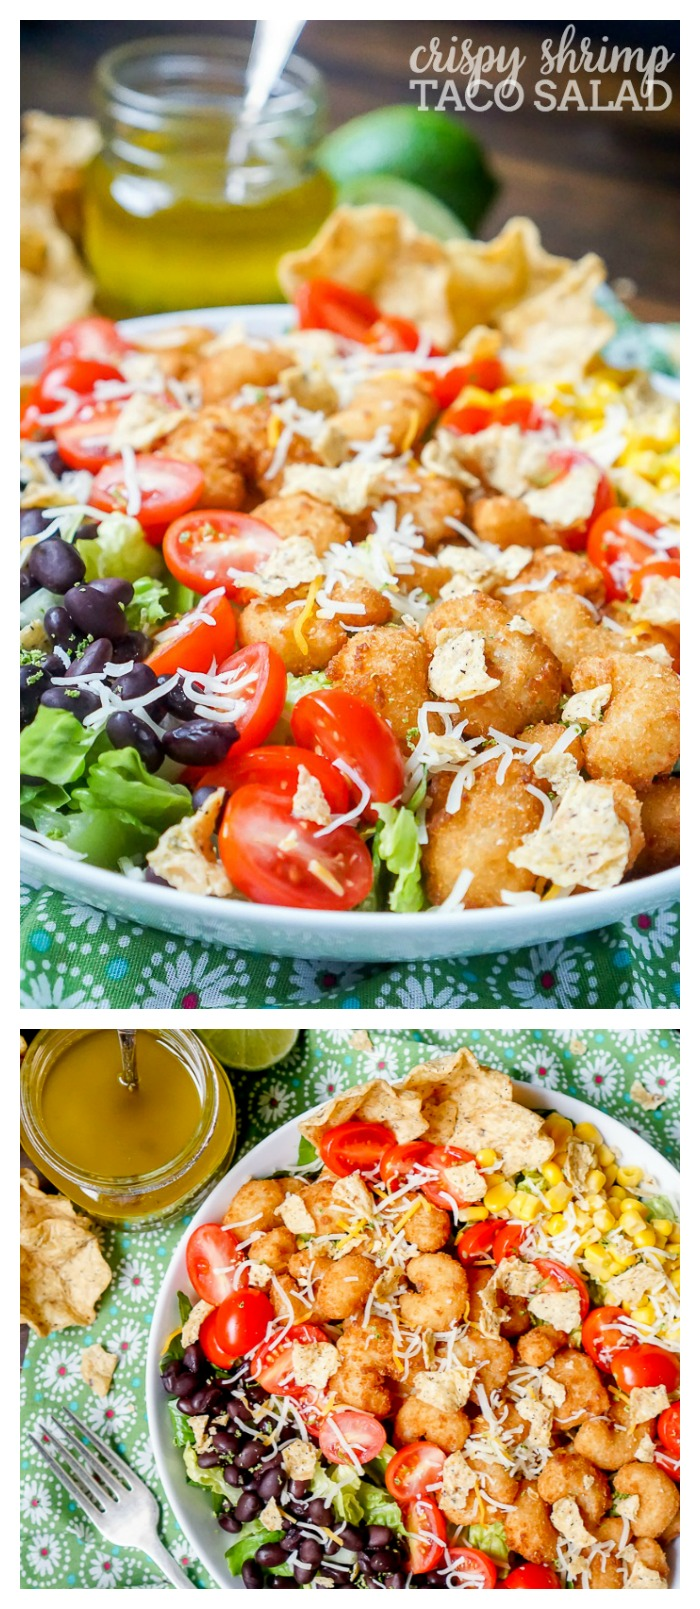 Crispy Shrimp Taco Salad Recipe with Honey Lime Vinaigrette - An easy weeknight dinner that's fresh and tasty! | The Love Nerds #ad #SNPSweepstakes #HealthyHeartPledge